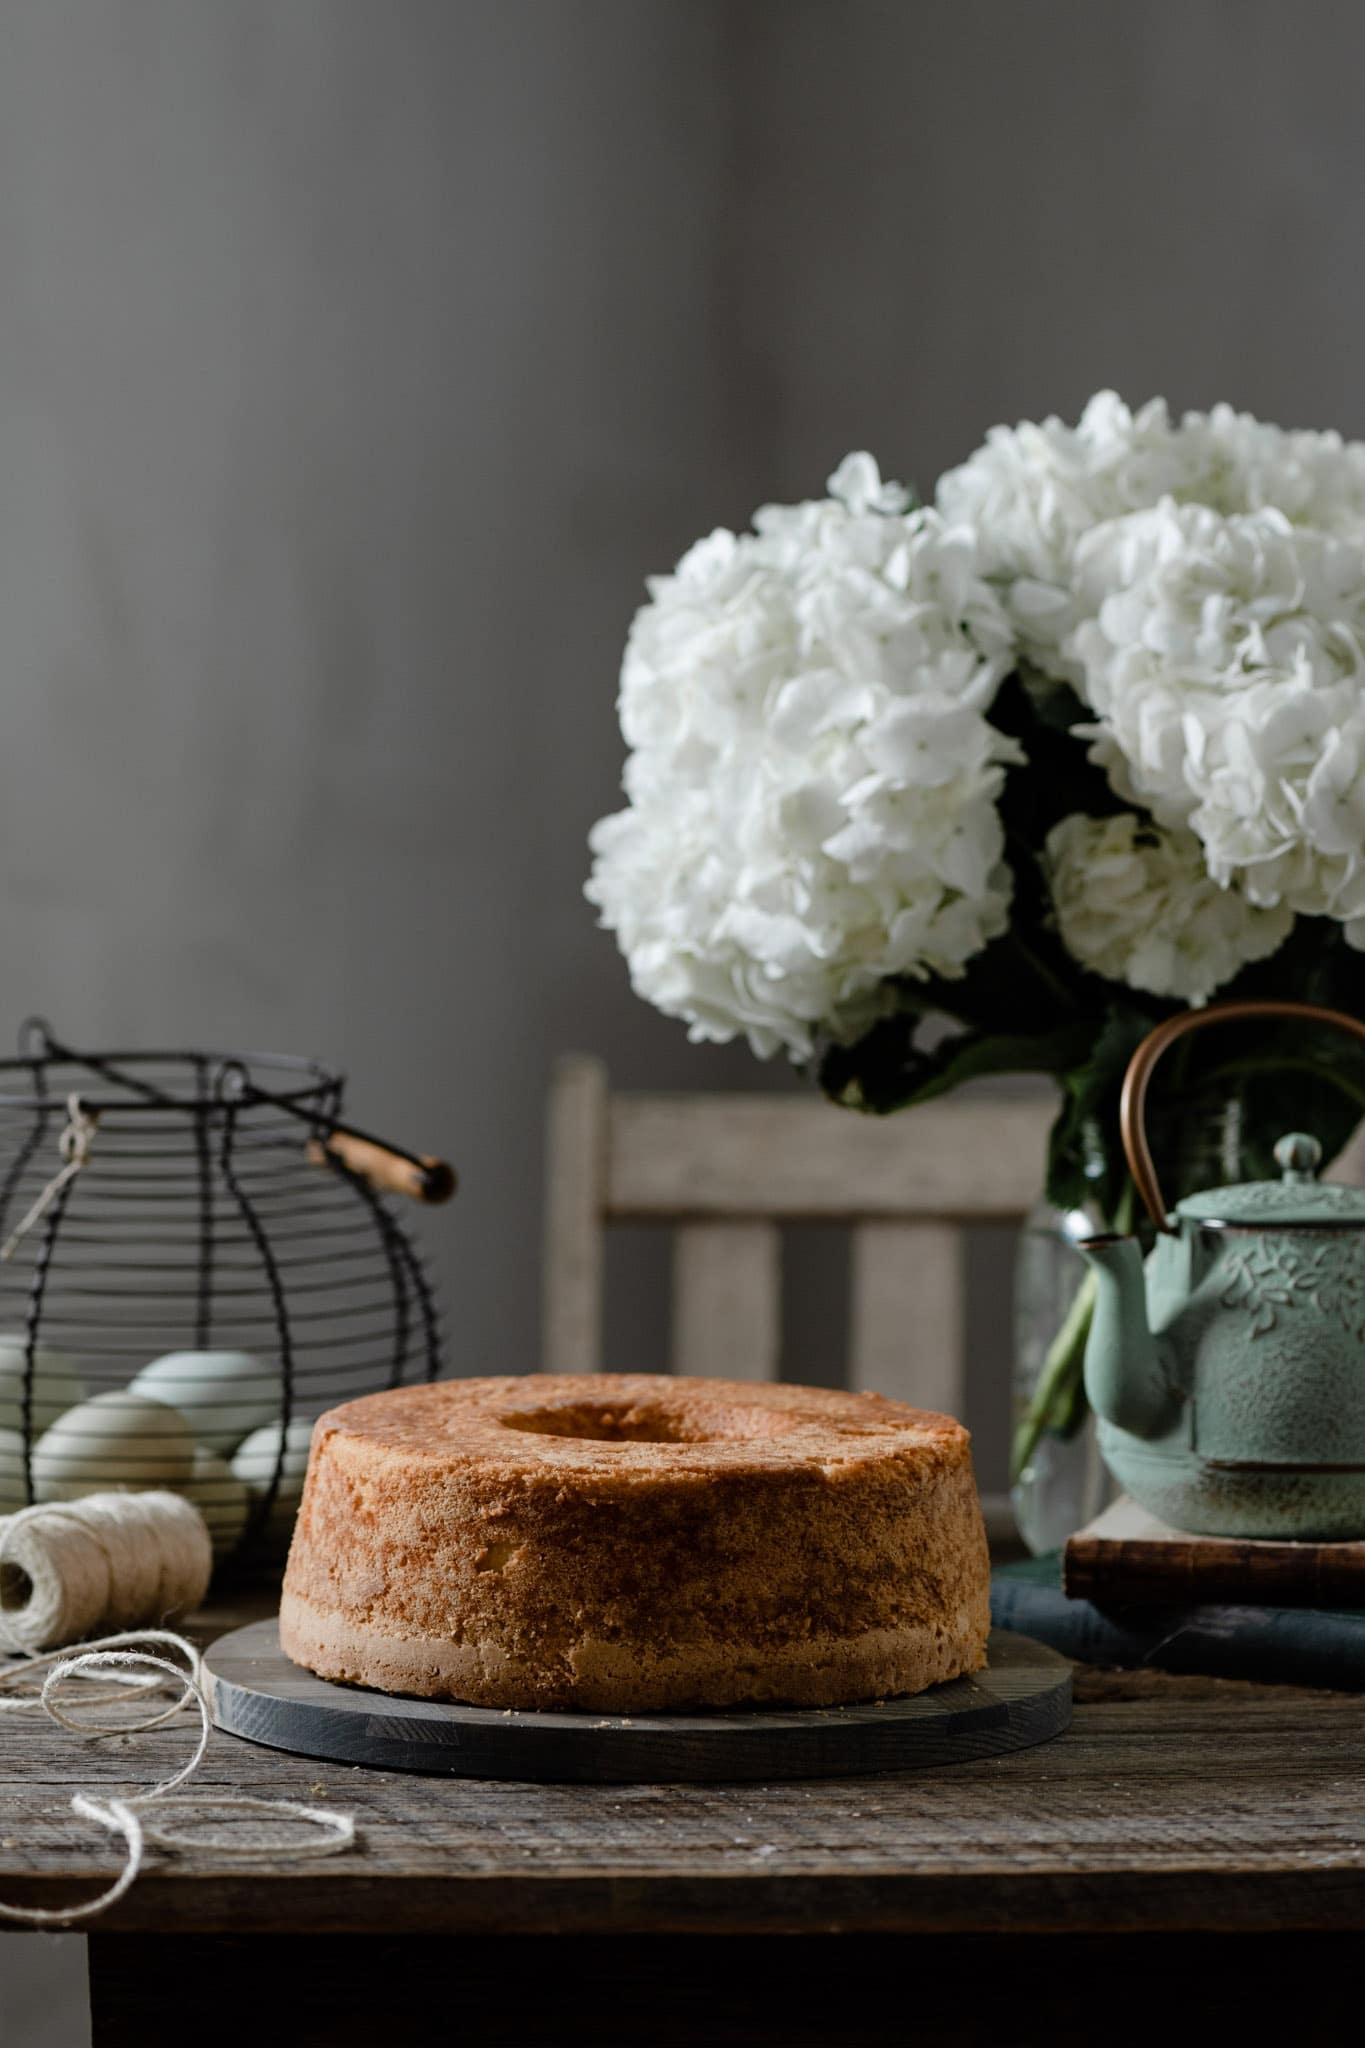 Traditional pound cake recipe on farmhouse table.